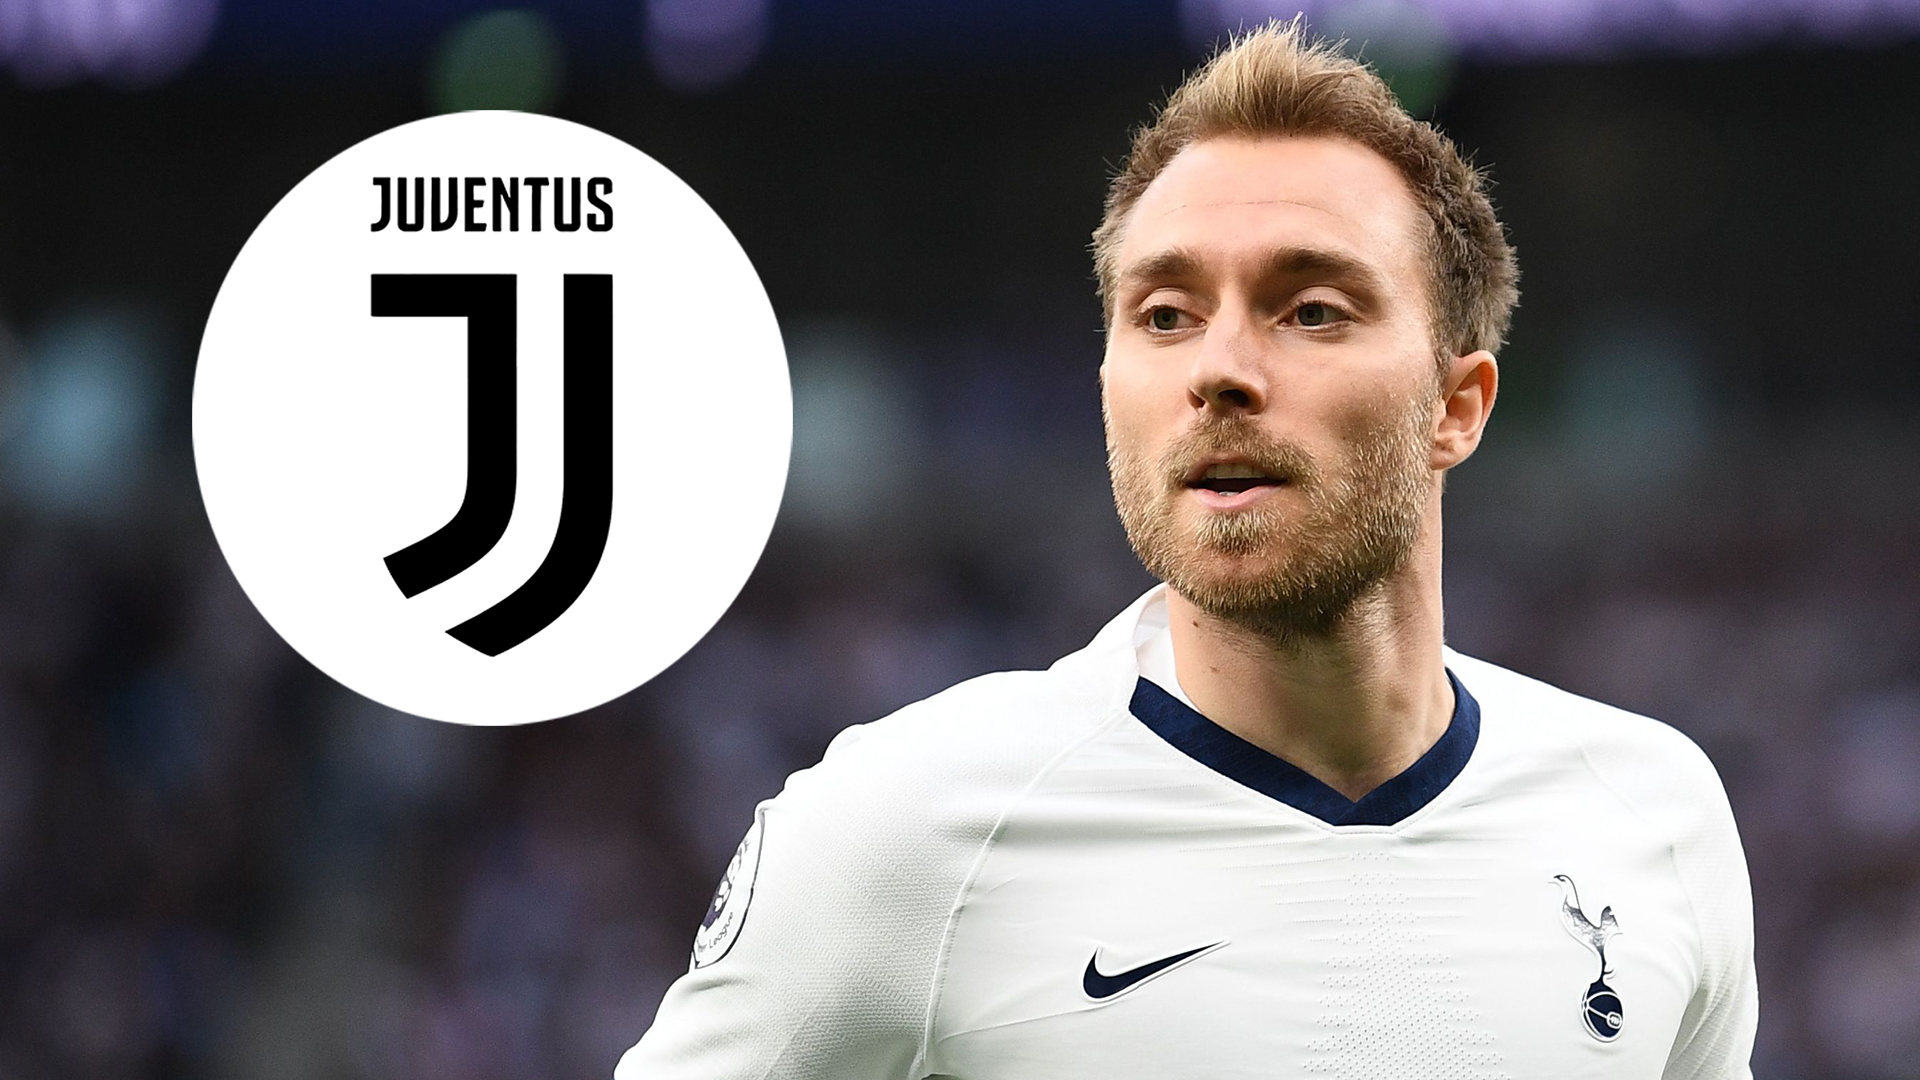 Real Madrid To Make Late £60m Bid For Christian Eriksen